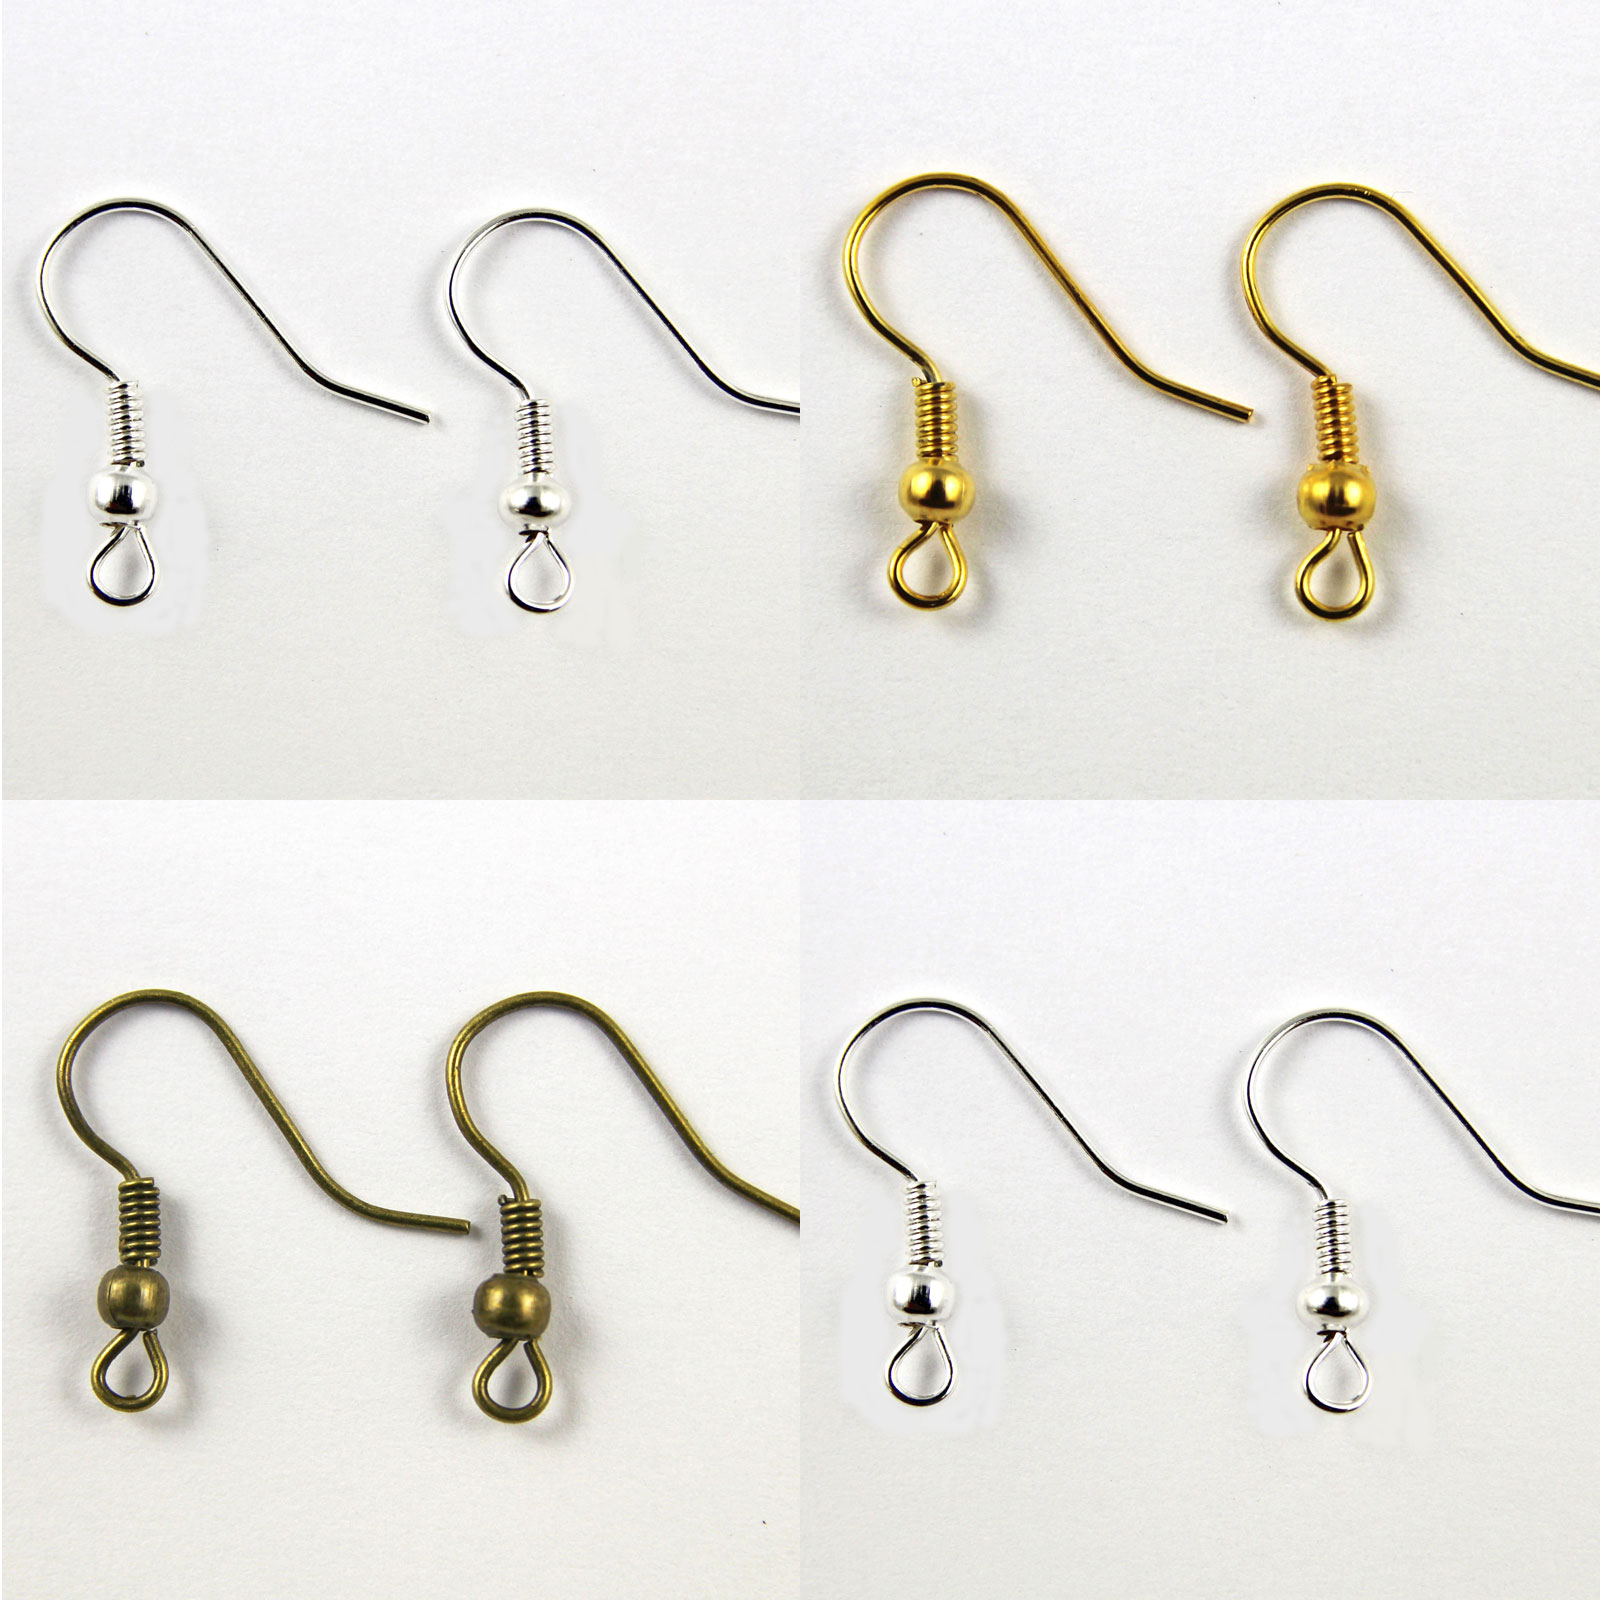 200-100-Pairs-FISH-HOOK-EARWIRES-18mm-Choose-SILVER-BRONZE-GOLD-PLATED